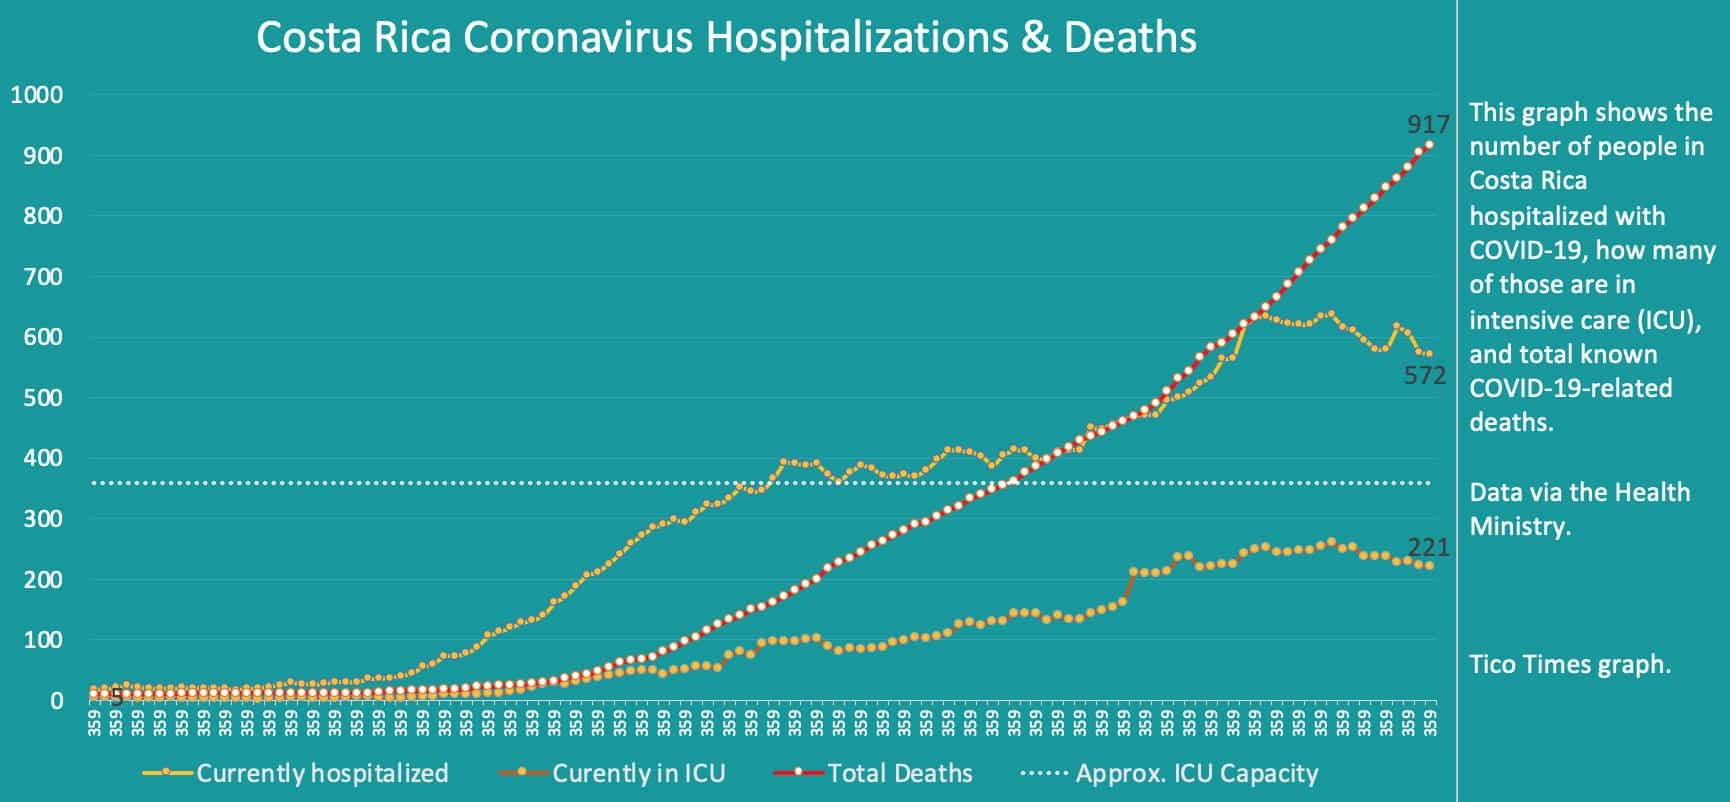 Costa Rica coronavirus hospitalizations and deaths on October 1, 2020